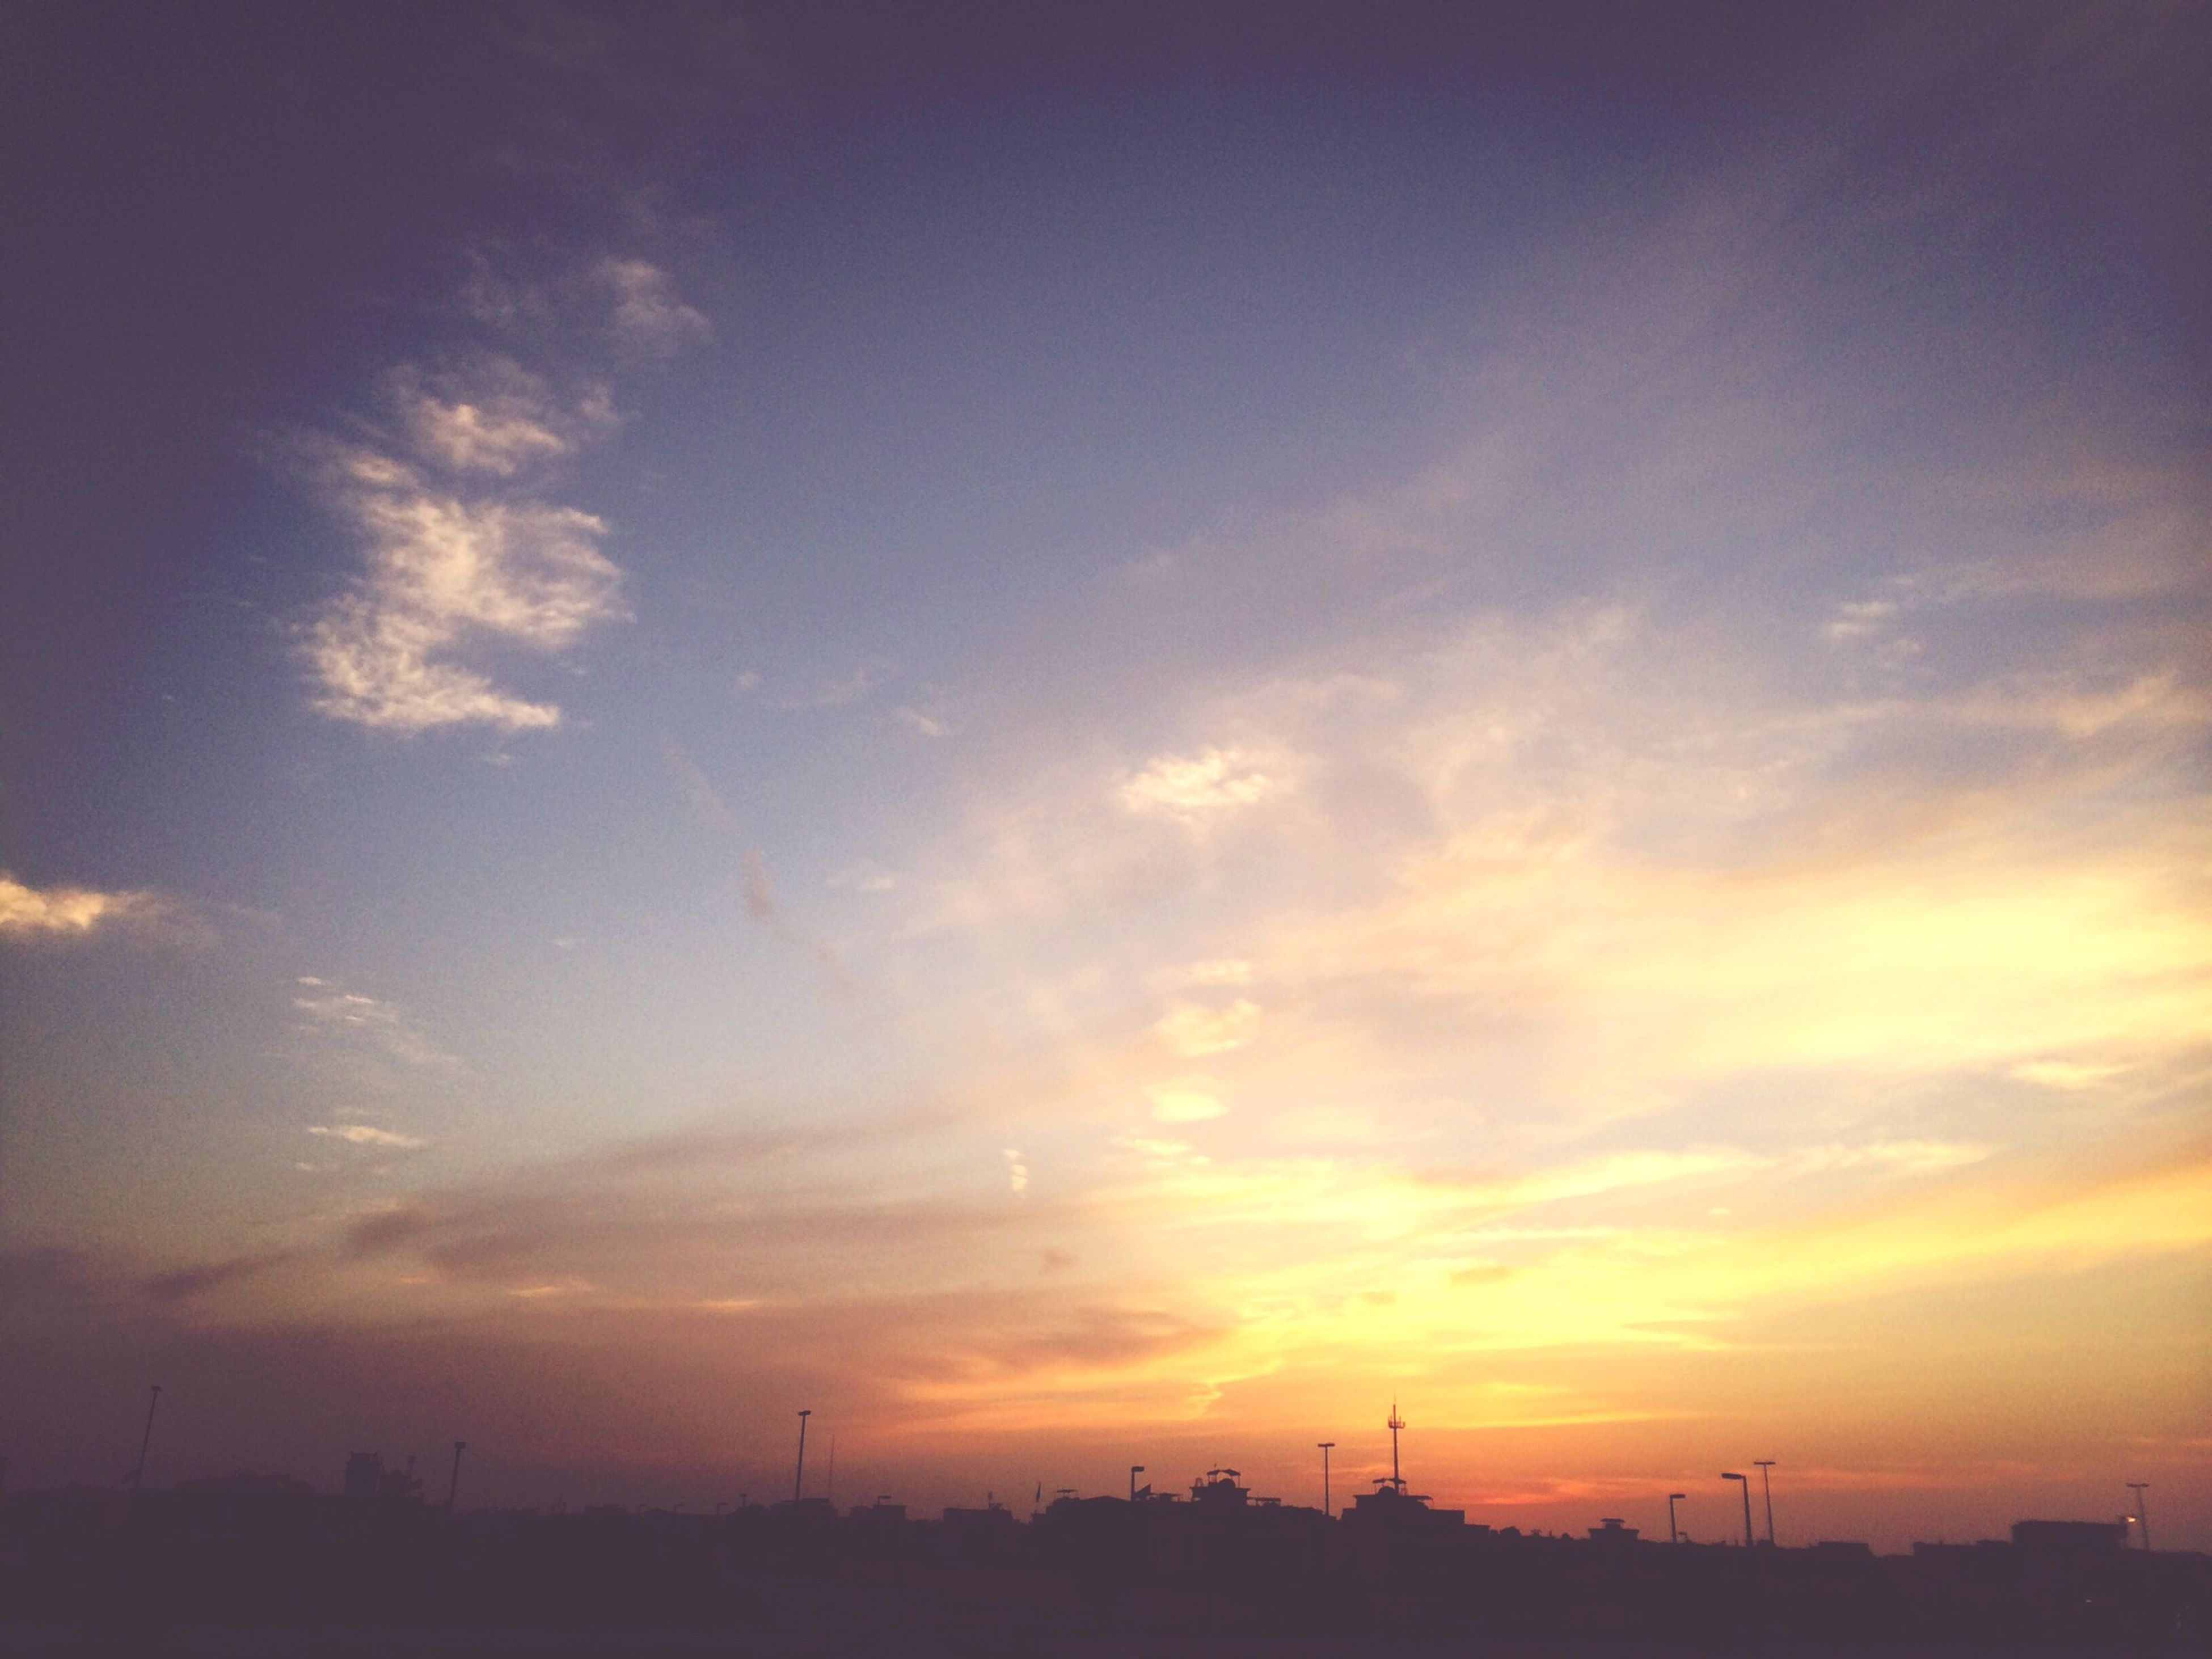 sunset, silhouette, sky, scenics, tranquil scene, tranquility, beauty in nature, landscape, orange color, nature, cloud - sky, idyllic, cloud, outdoors, field, no people, dramatic sky, dusk, low angle view, non-urban scene